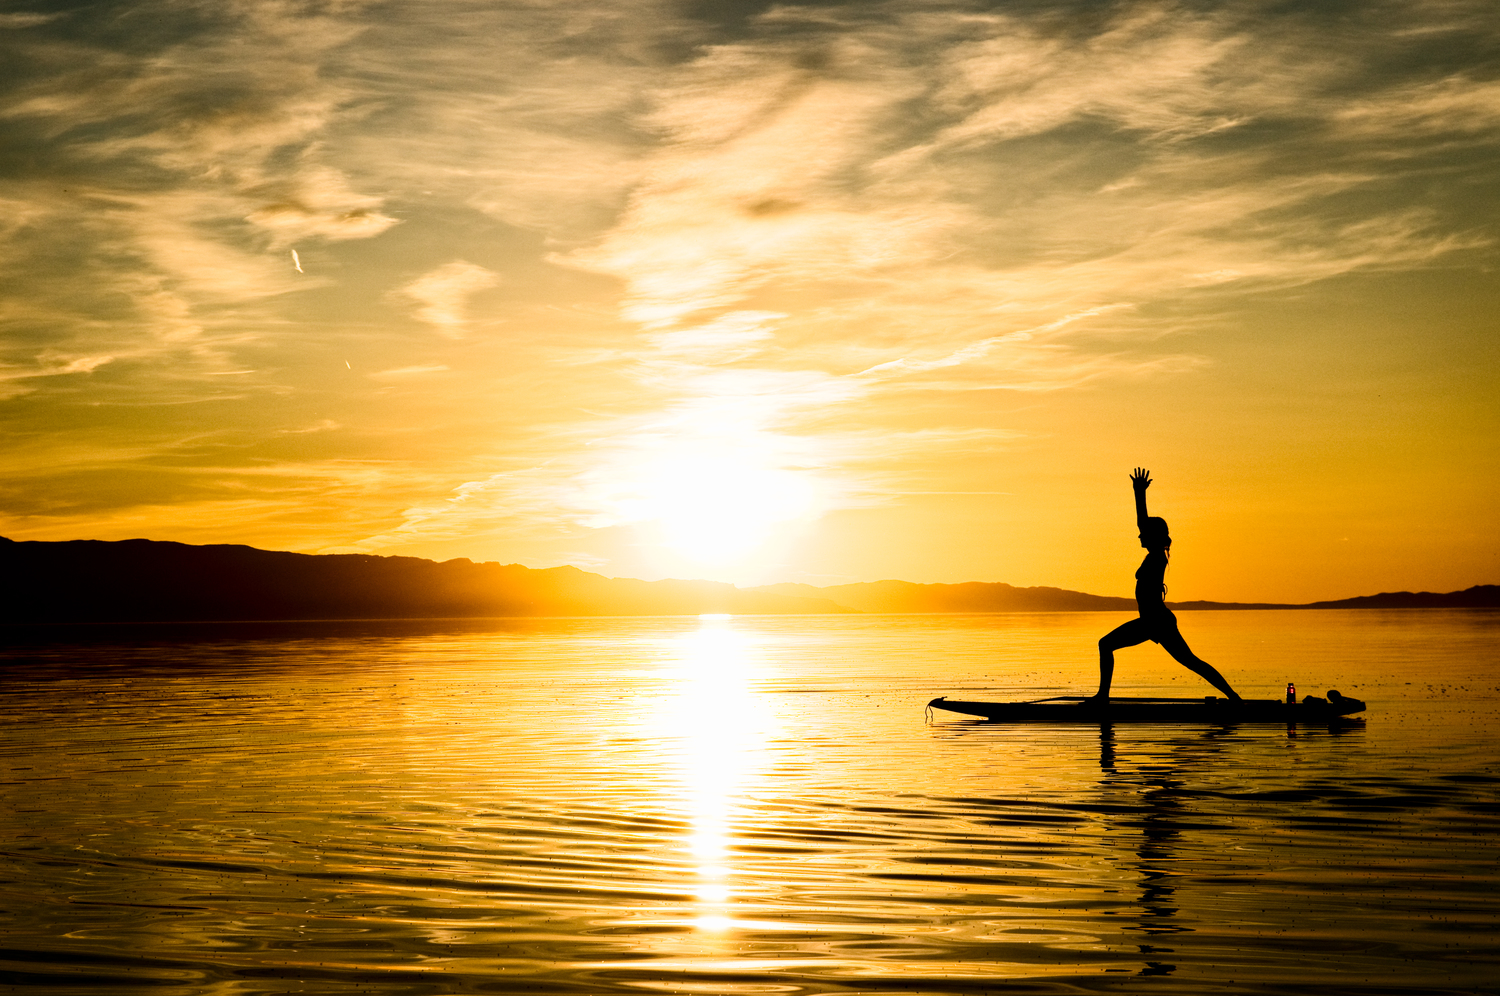 SUP YOGA - This summer we will provide a wide variety of yoga classes.Stay tuned for our schedule to booking.